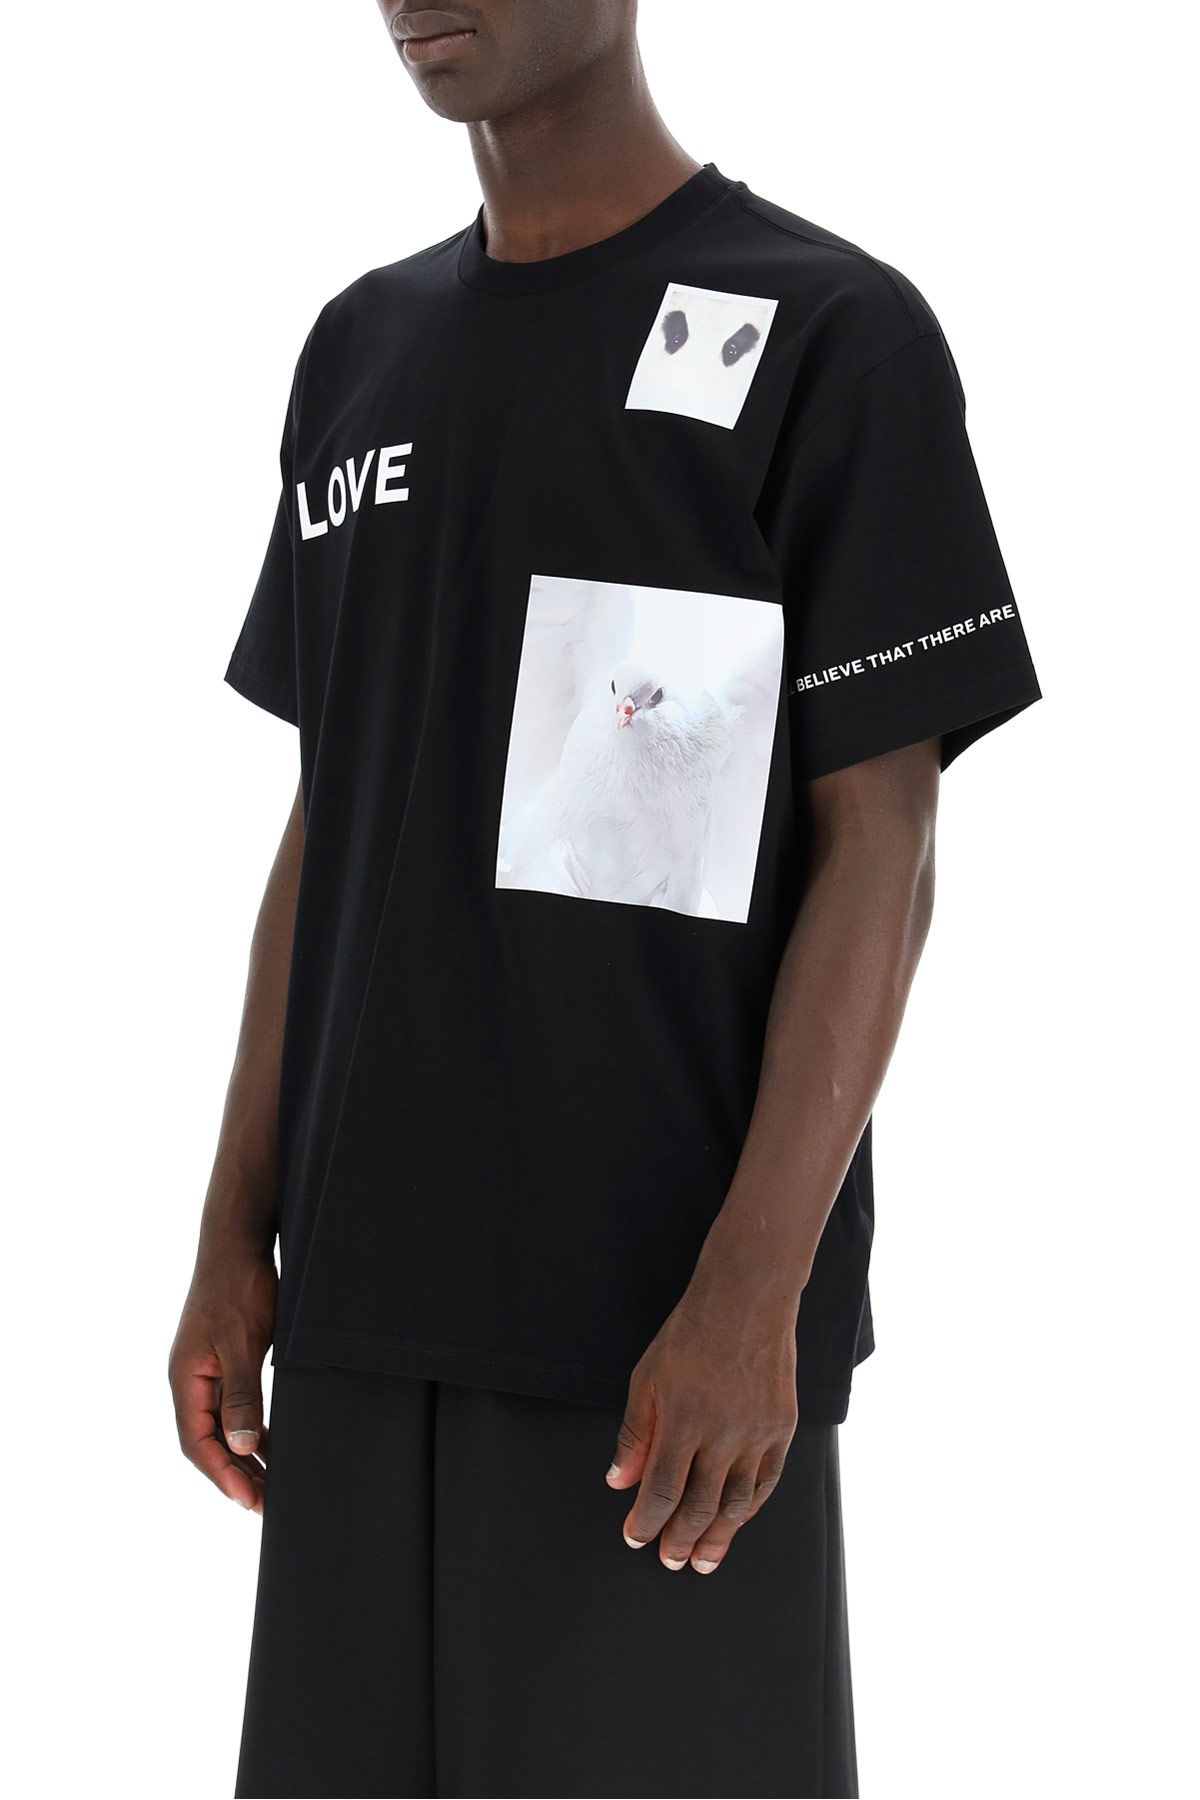 burberry clothing men t-shirt with collage prints